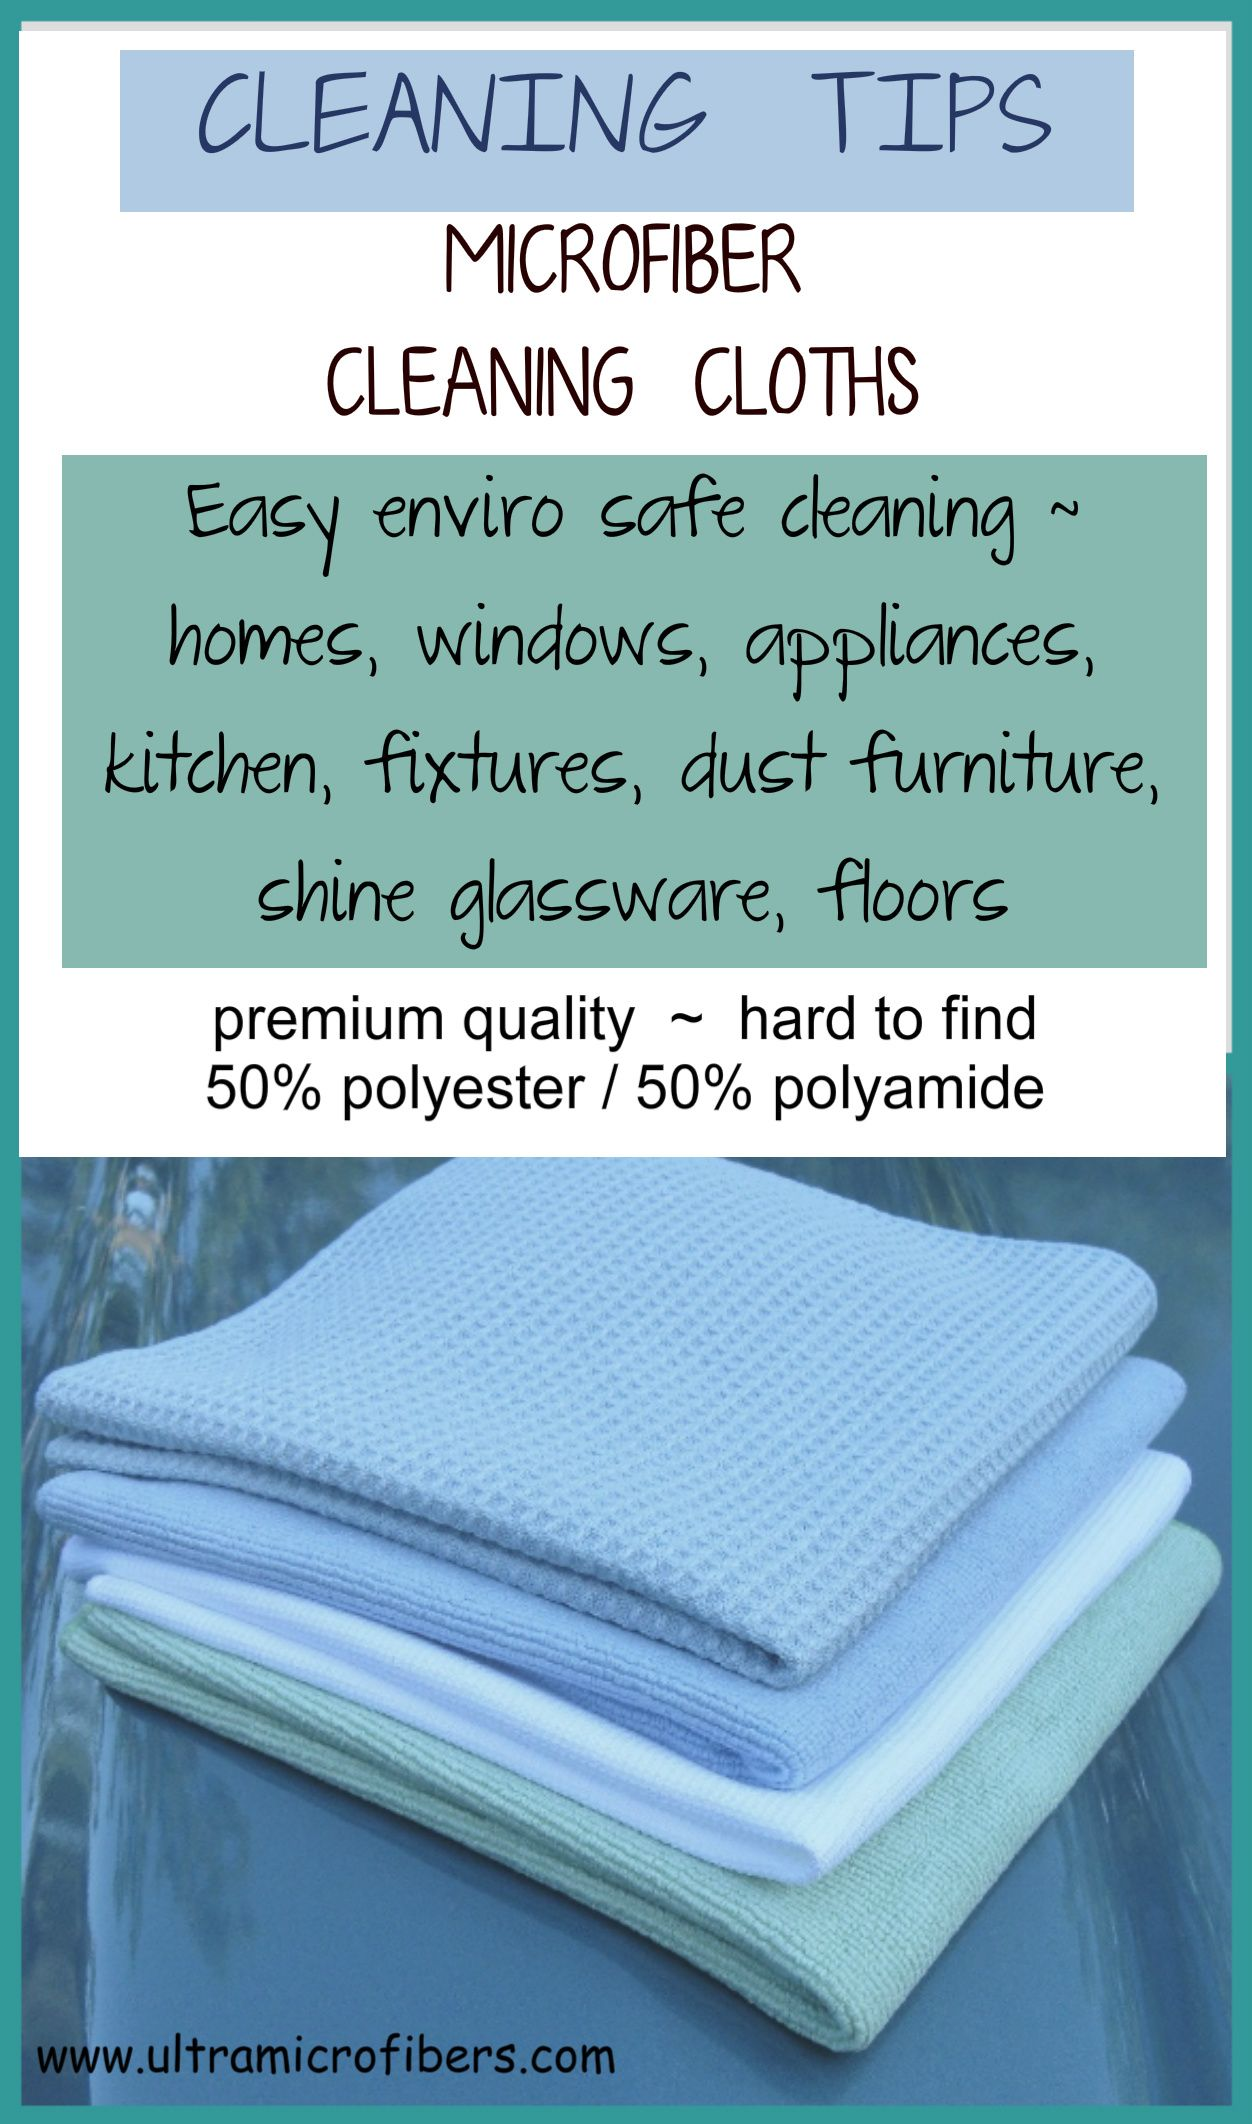 Cleaning Tips For Microfiber Cloths How To Maximize Your Use Of Your Cloths For Tips Specials Cleaning Clothes Clean Microfiber Microfiber Cleaning Cloths